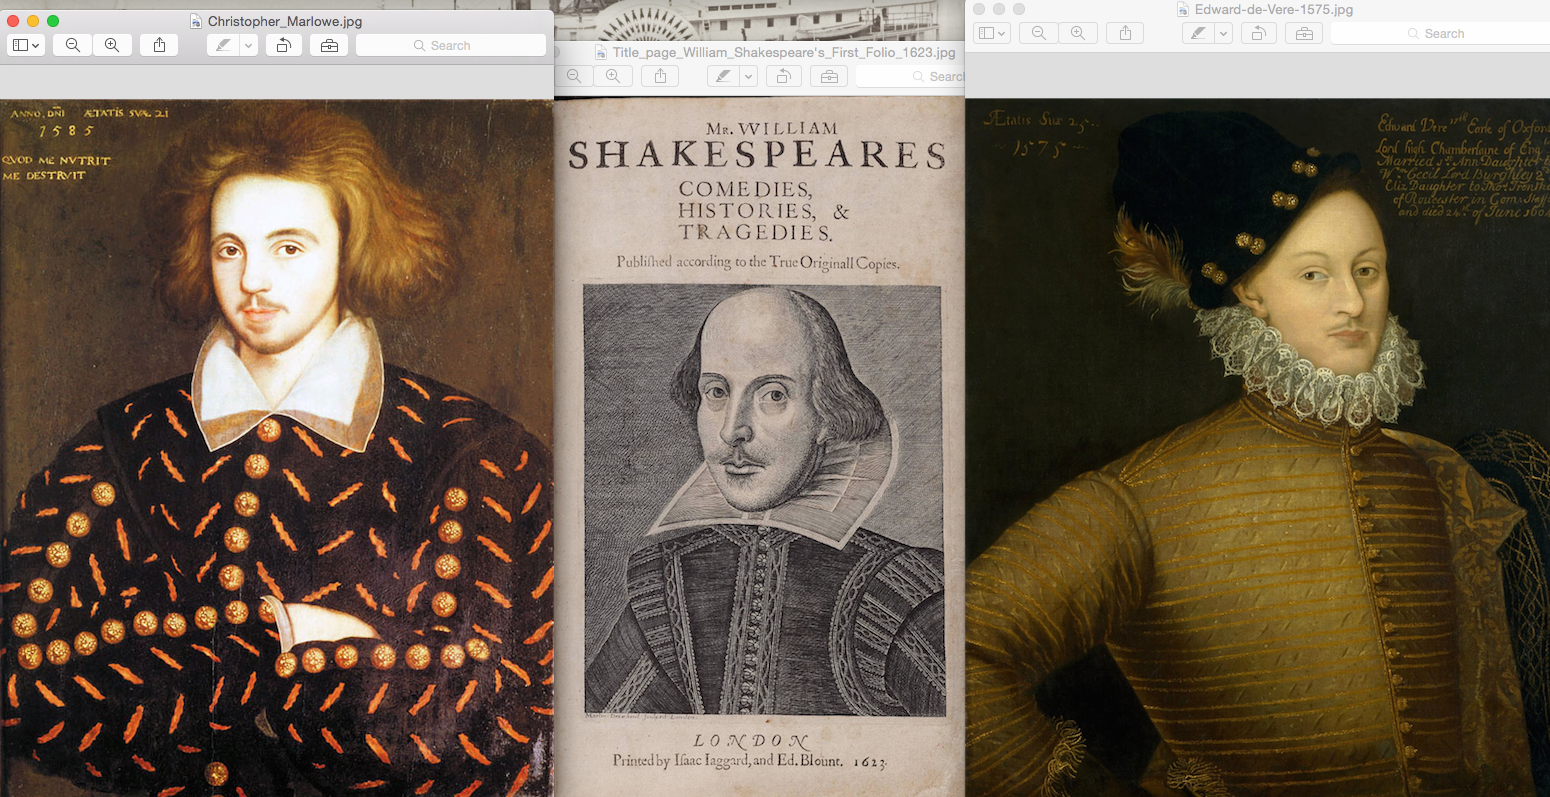 william shakespeare biography 3 essay William shakespeare was born in stratford-upon-avon, england on april 23, 1564.